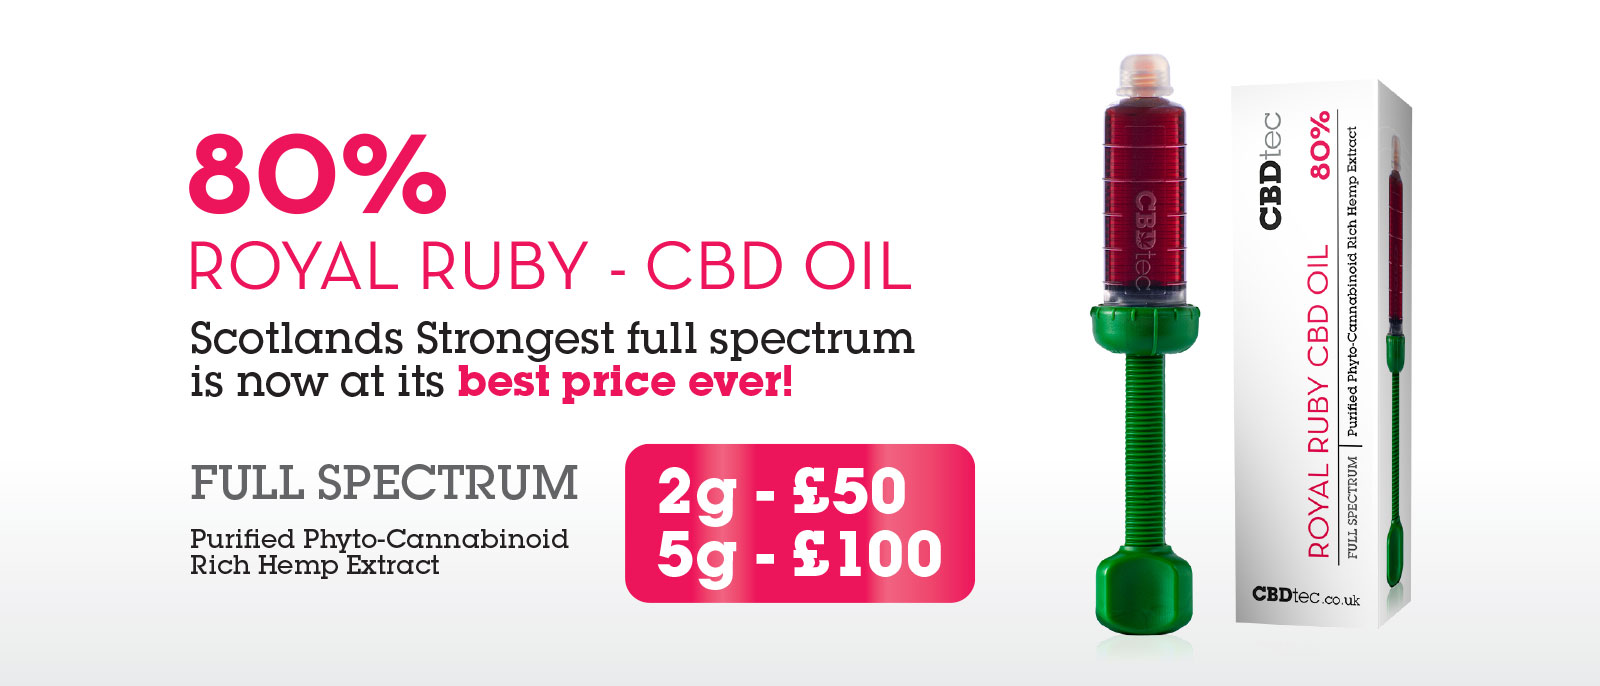 80% royal ruby cbd oil special offer